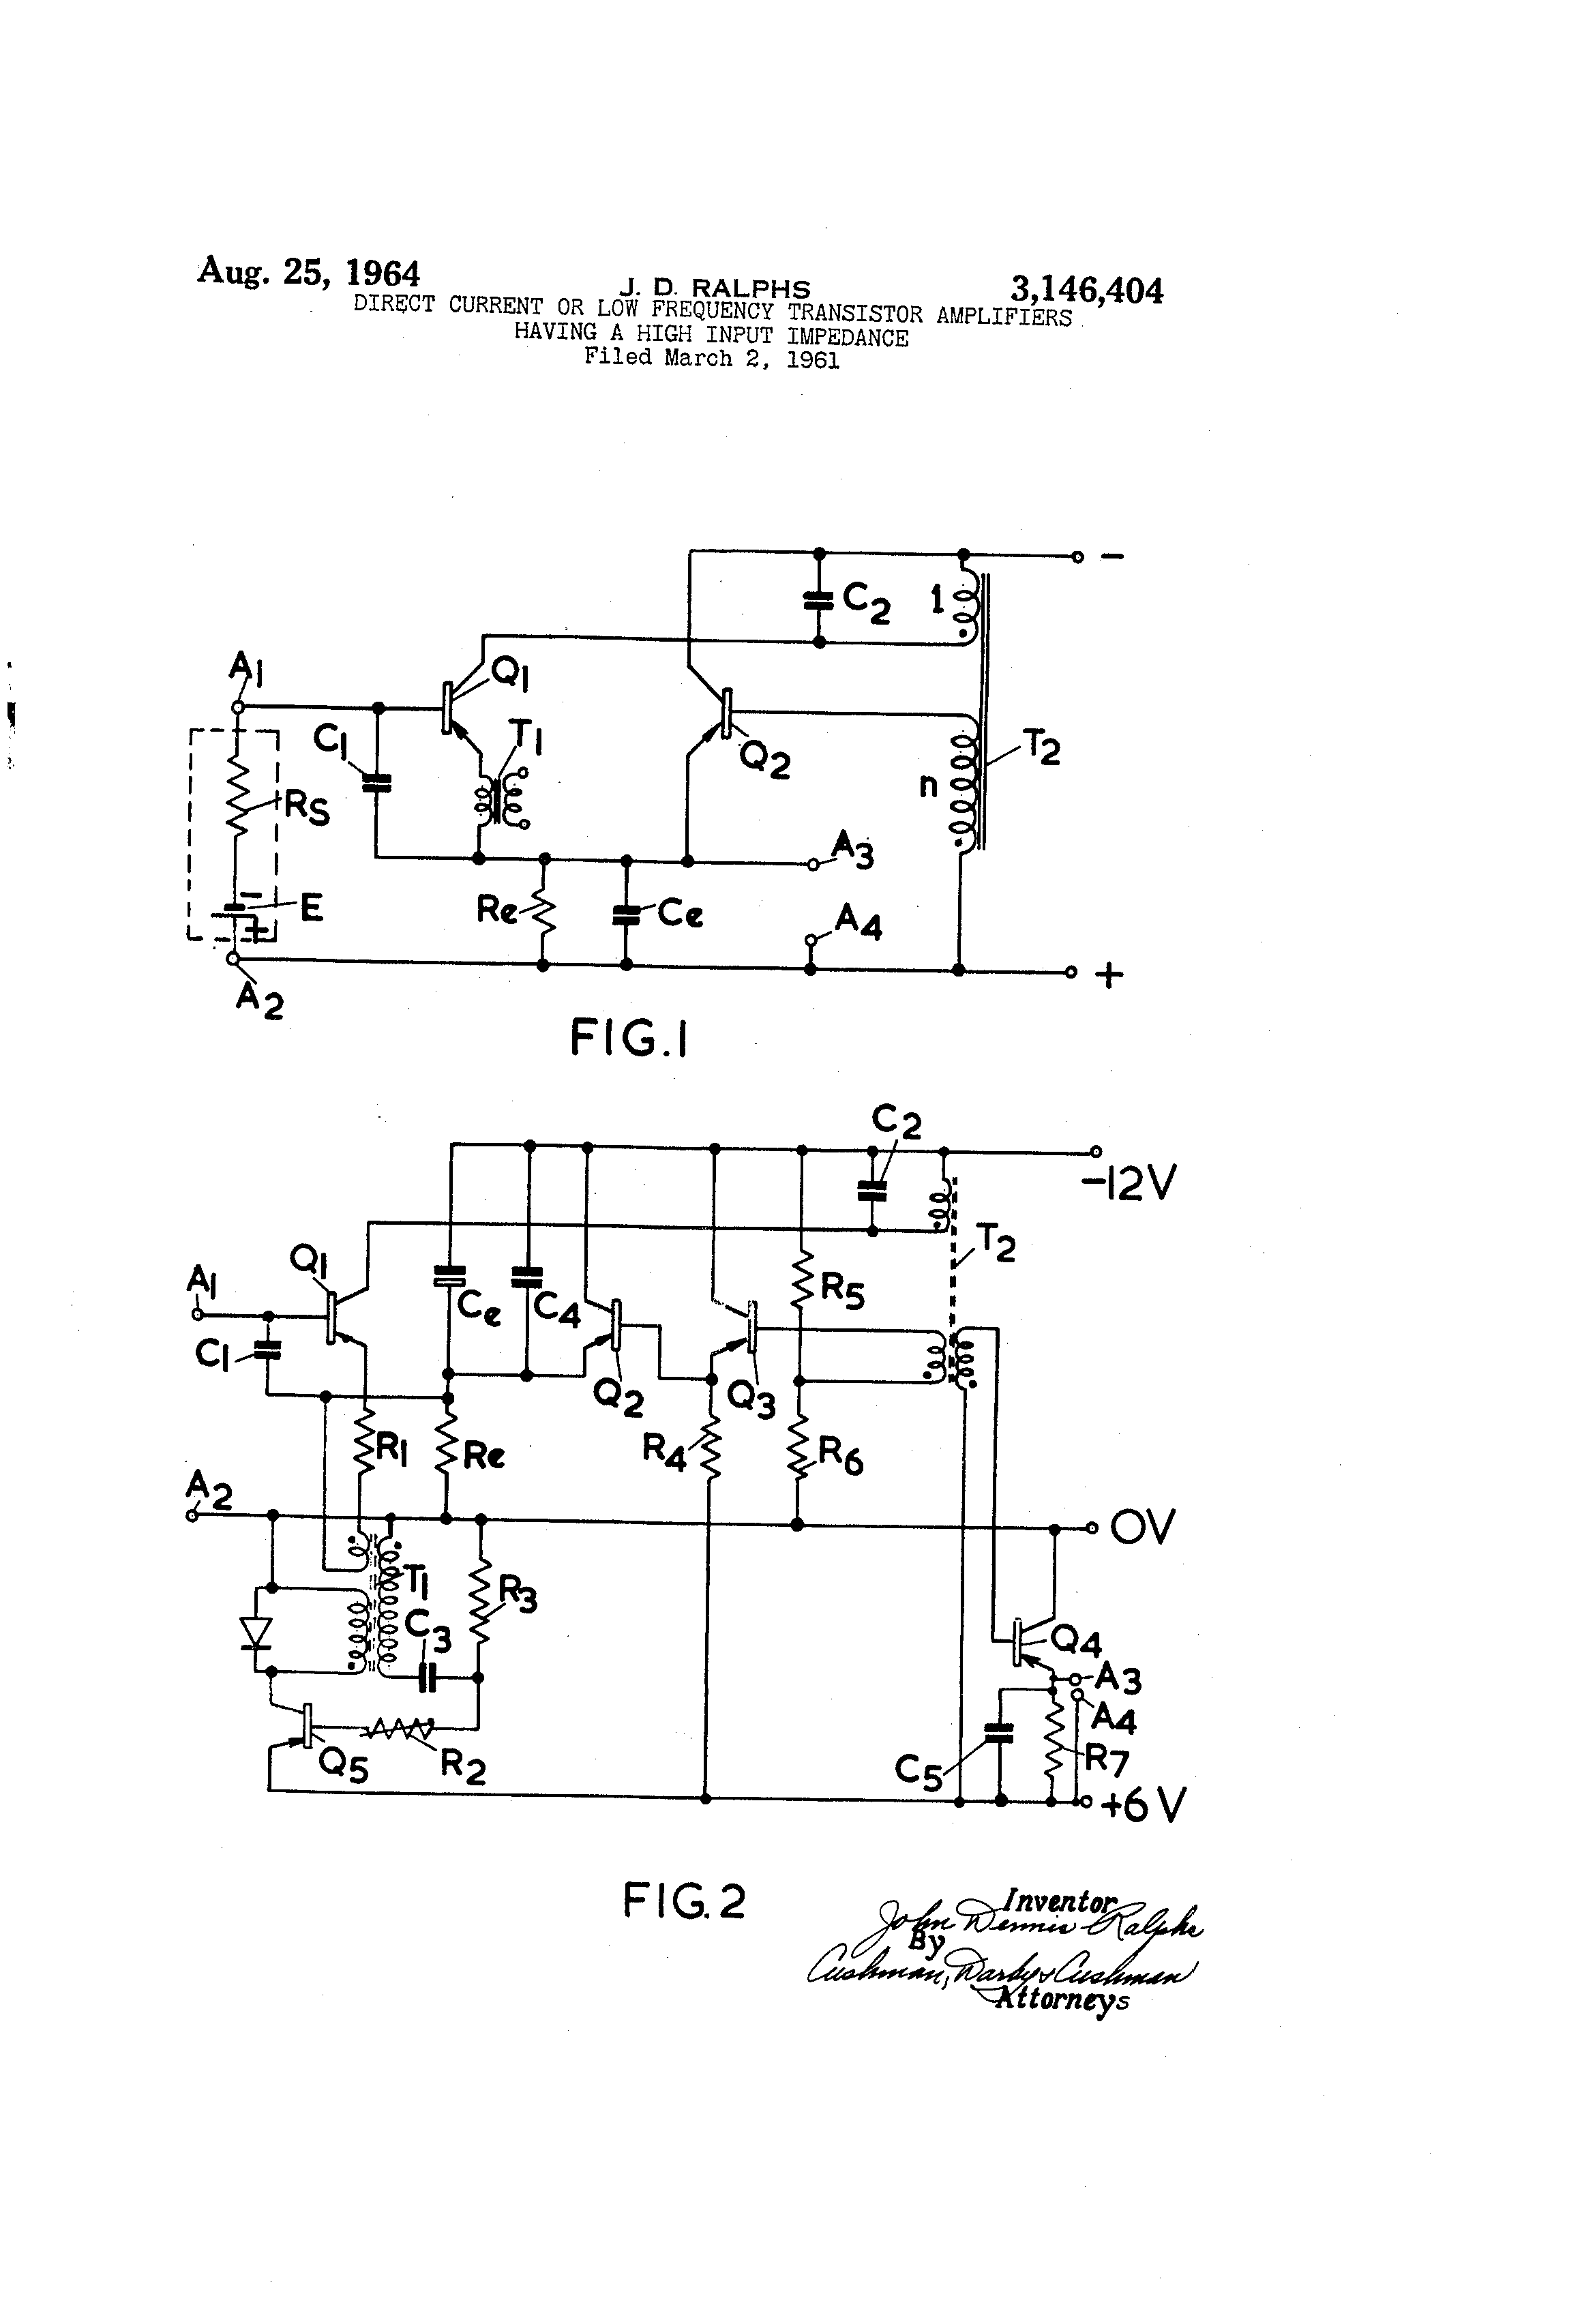 Patent US3146404 - Direct current or low frequency transistor